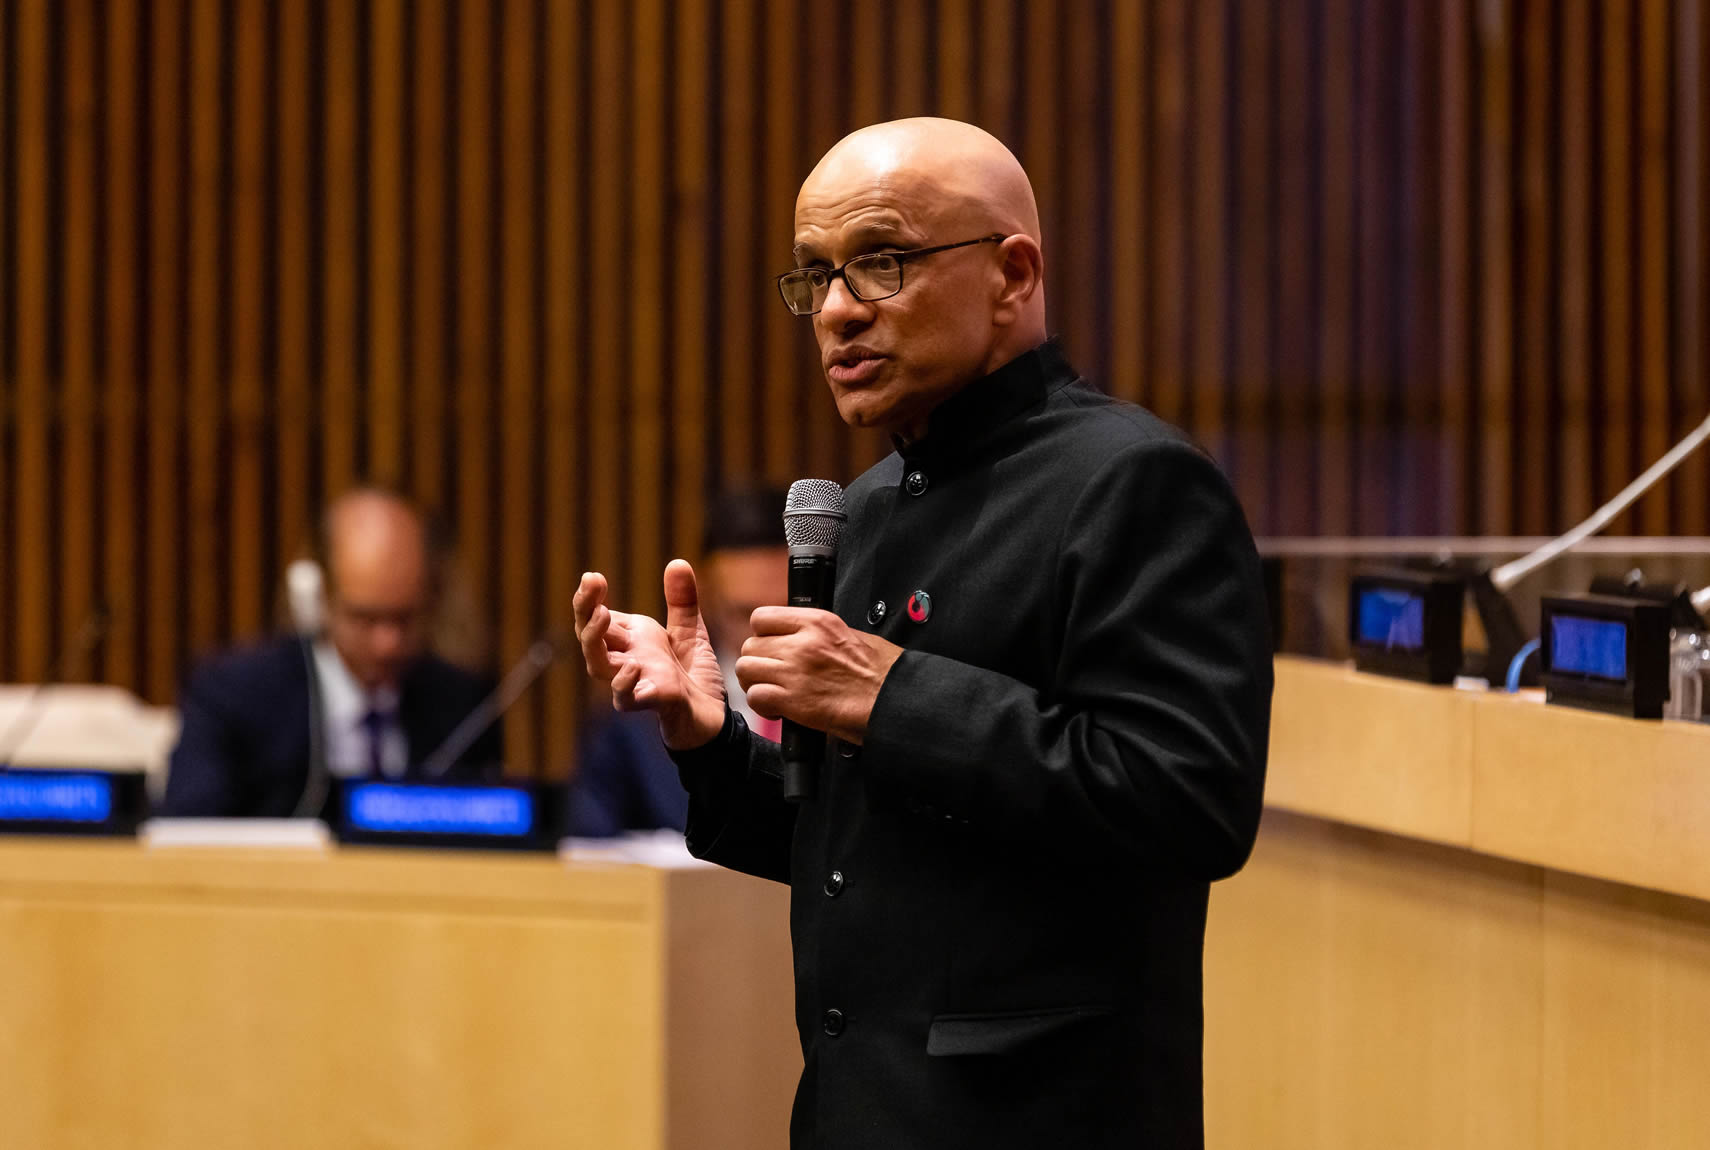 Atul Tandon advocates for women and girls at the United Nations